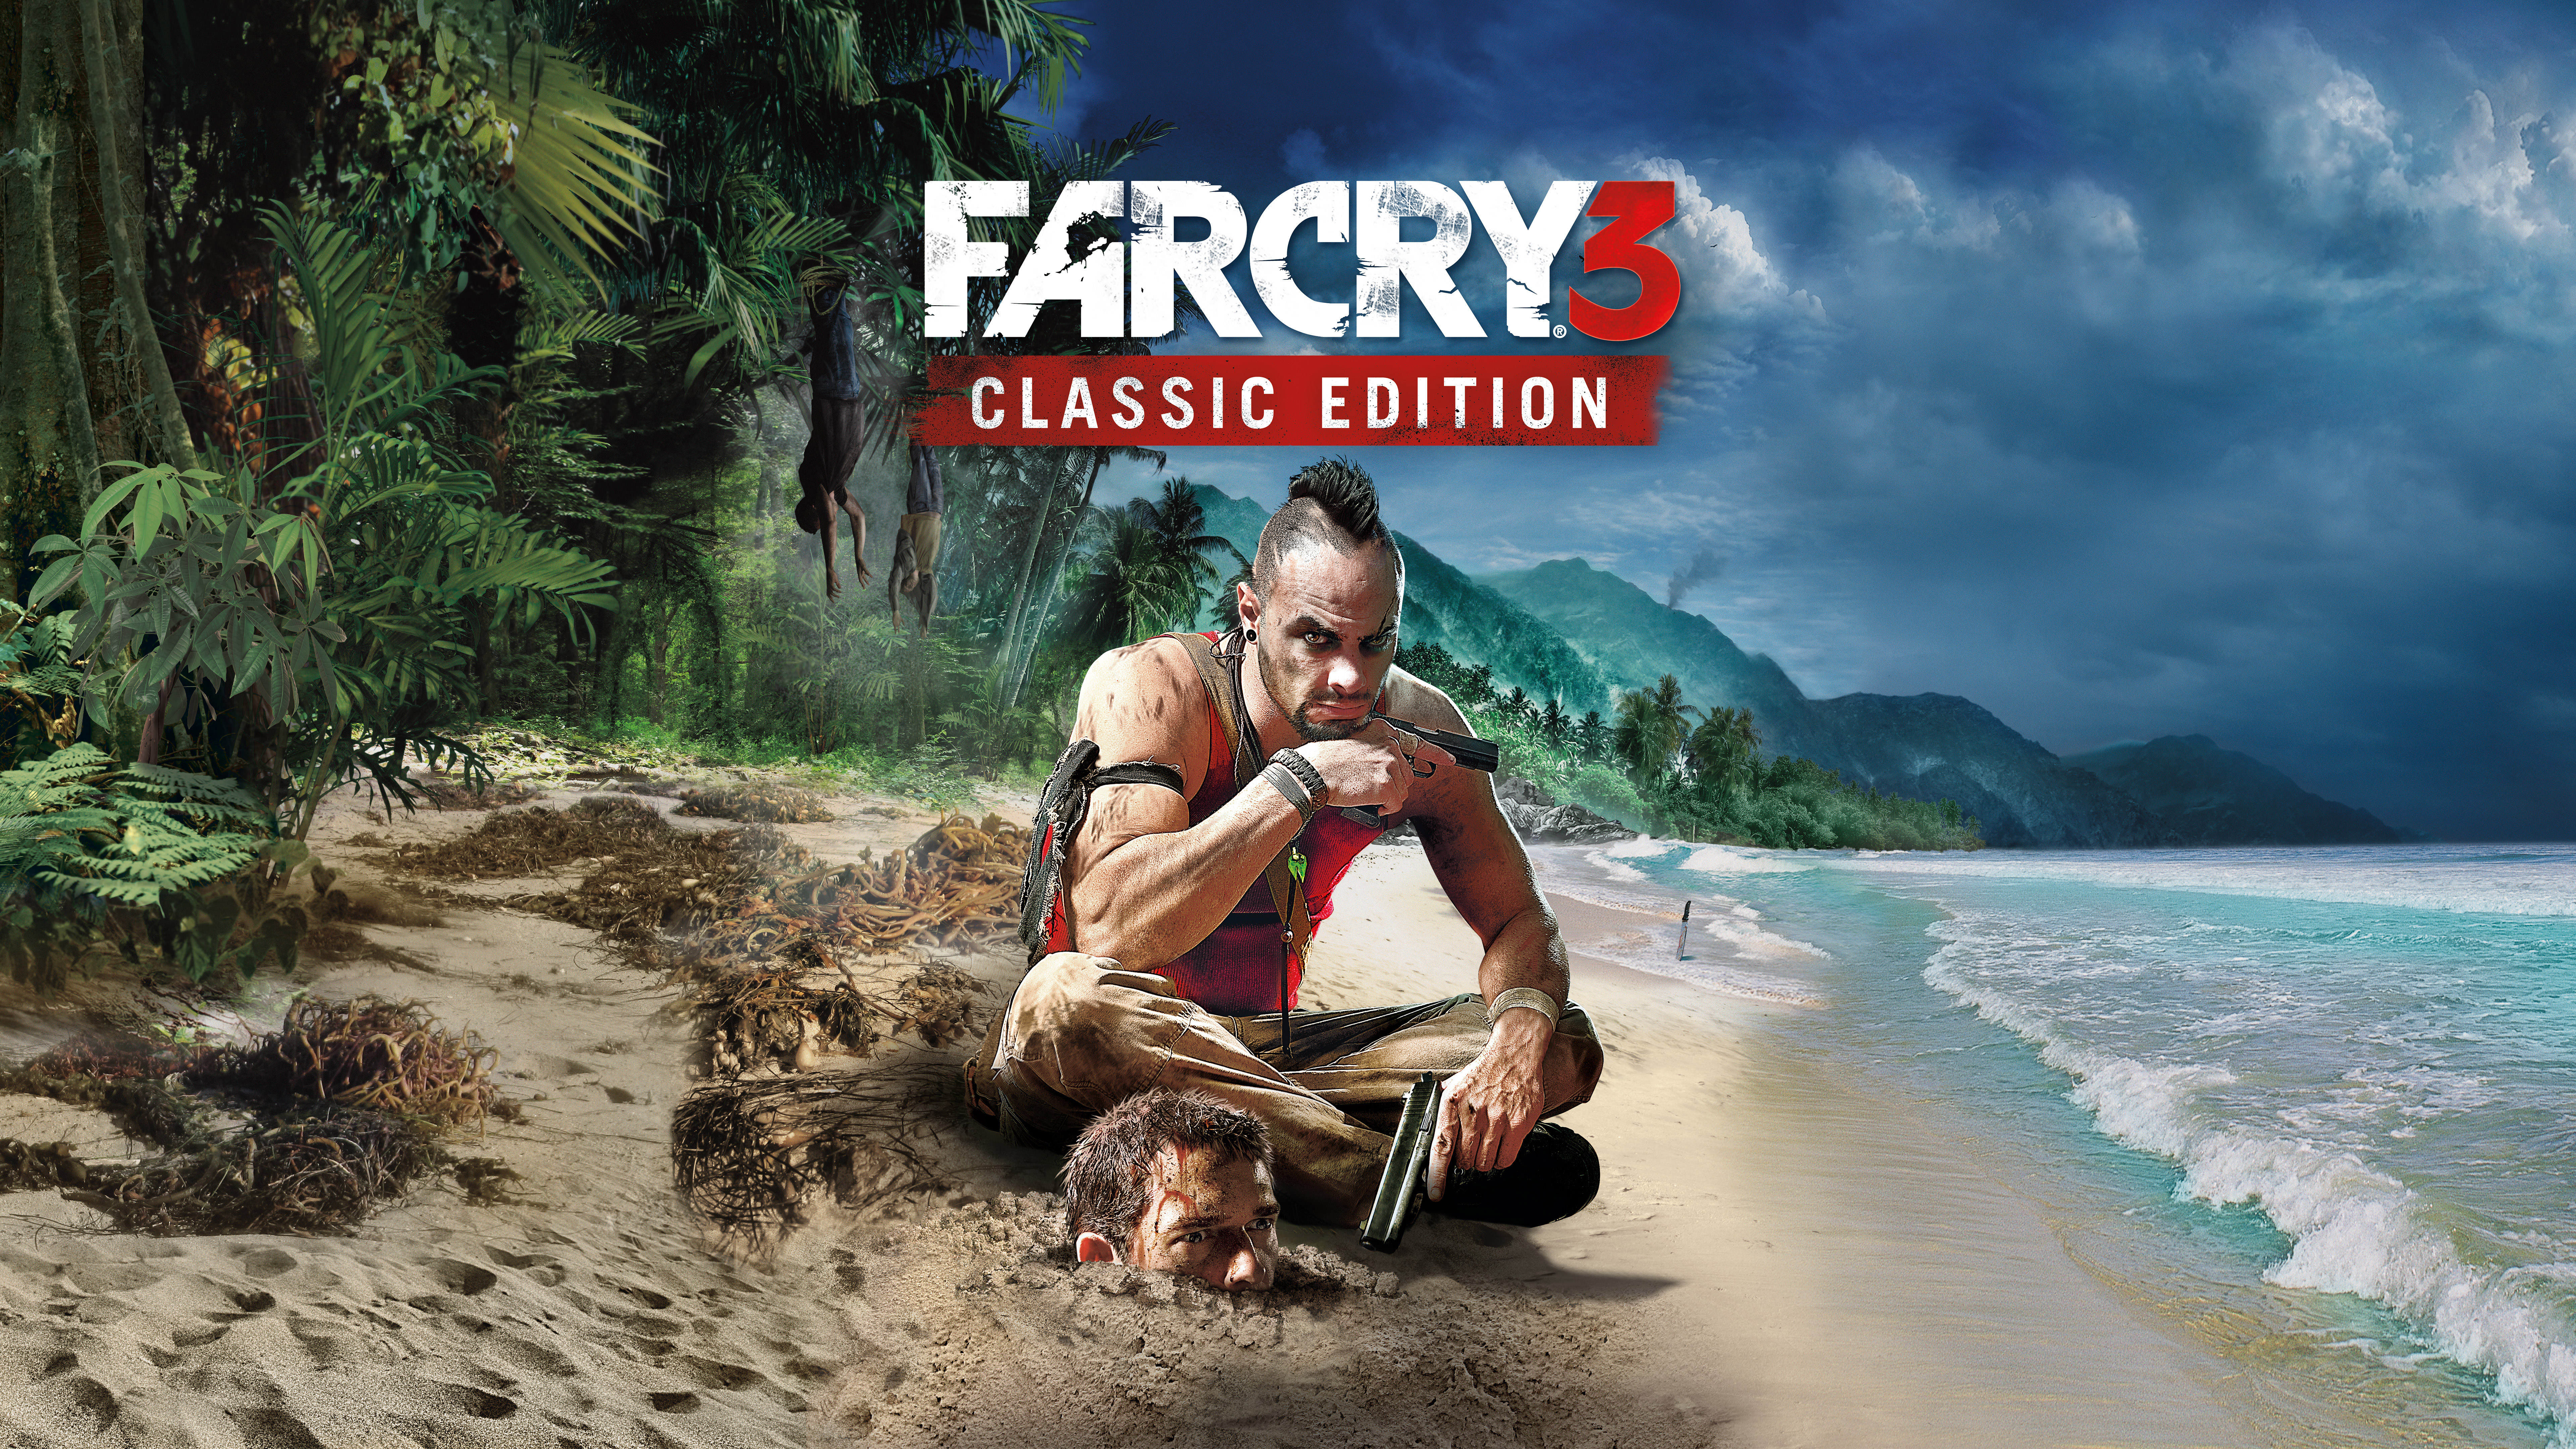 1920x1080 Far Cry 3 8k Laptop Full Hd 1080p Hd 4k Wallpapers Images Backgrounds Photos And Pictures